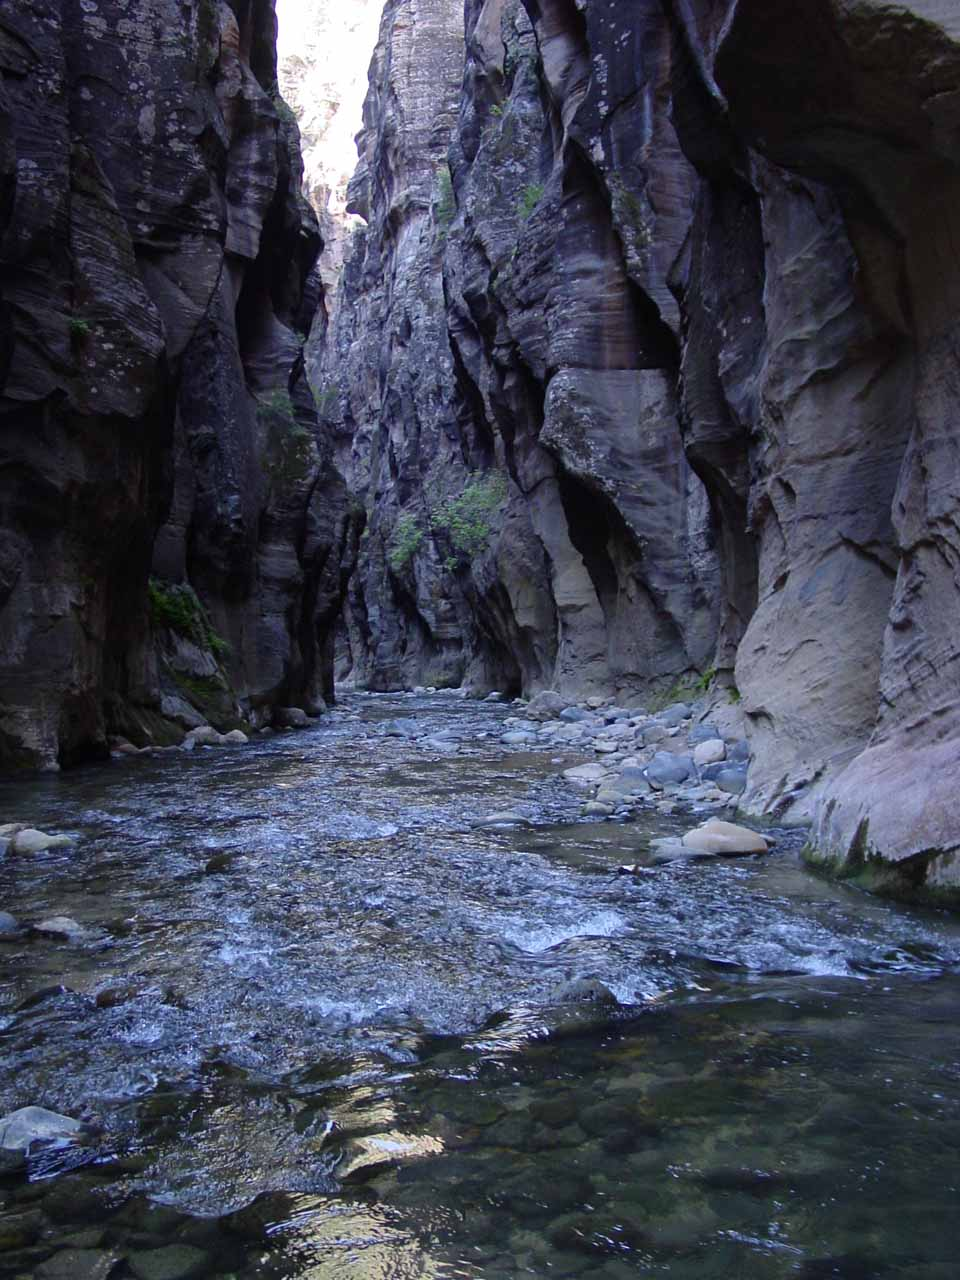 The Narrows that is wall-to-wall water at this point